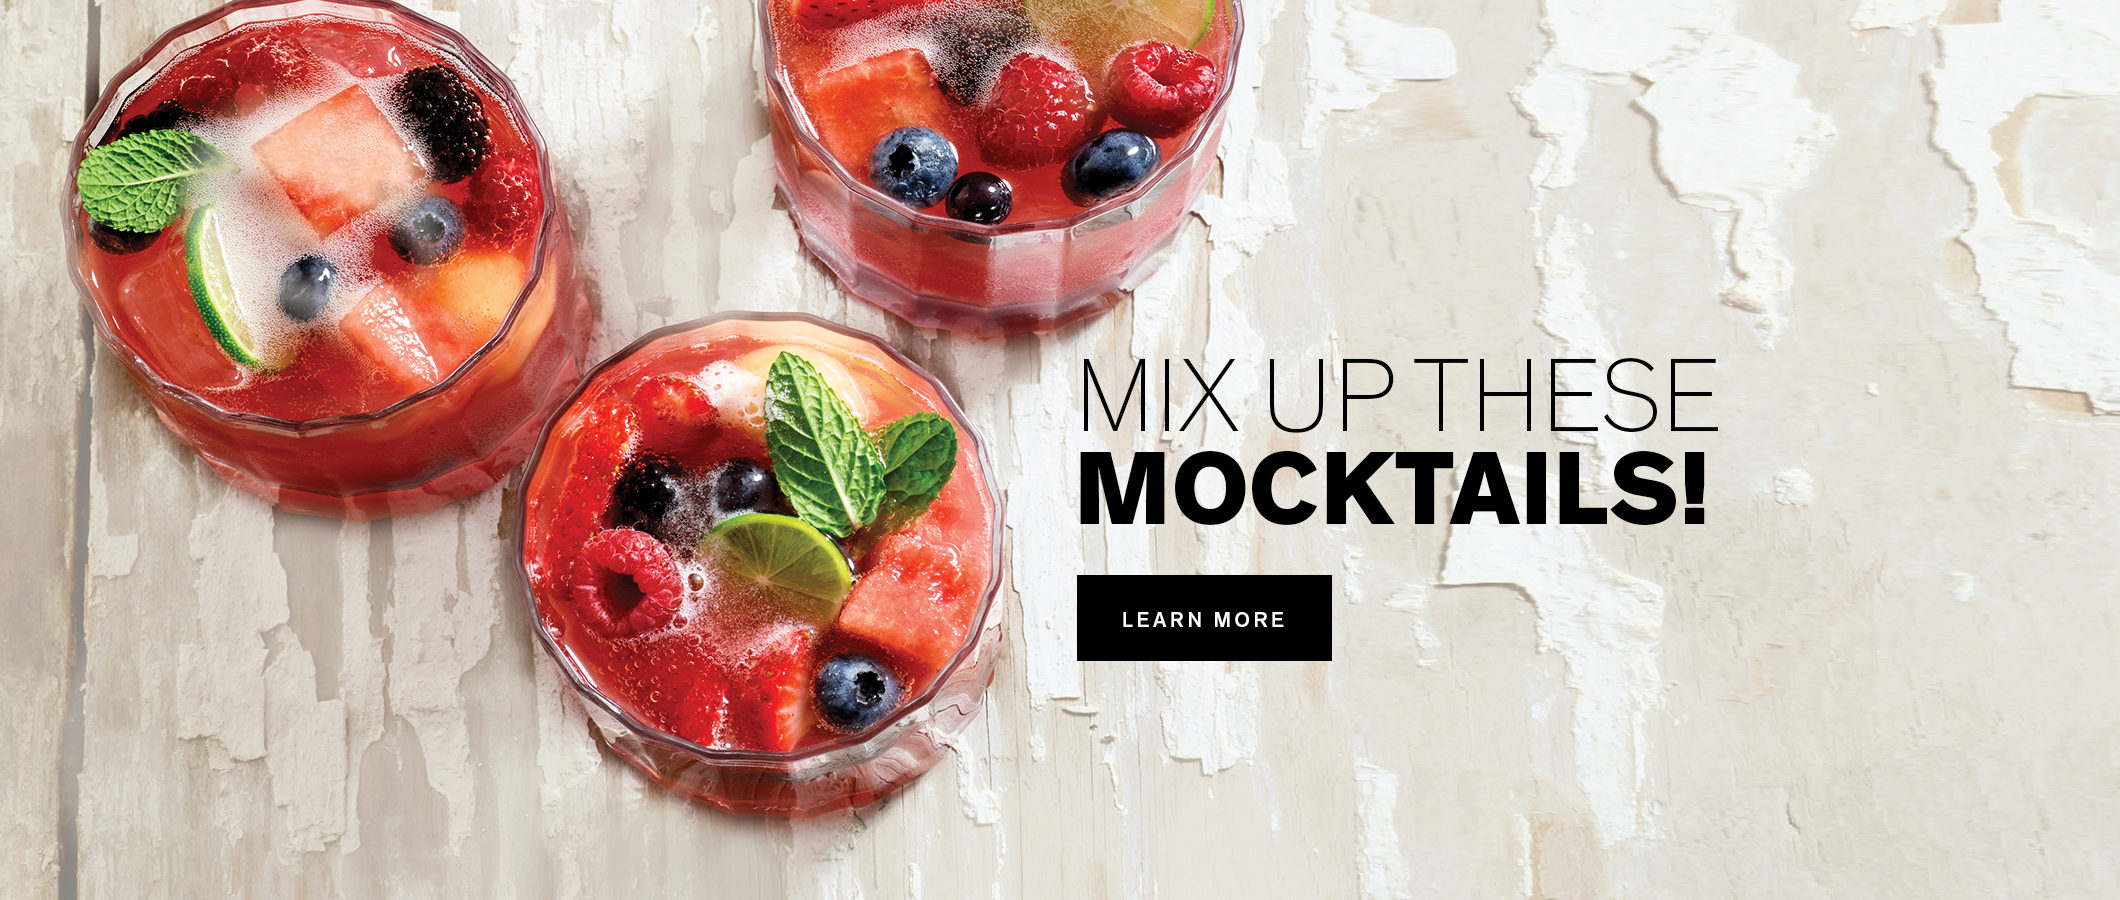 Mix Up These Mocktails! LEARN MORE